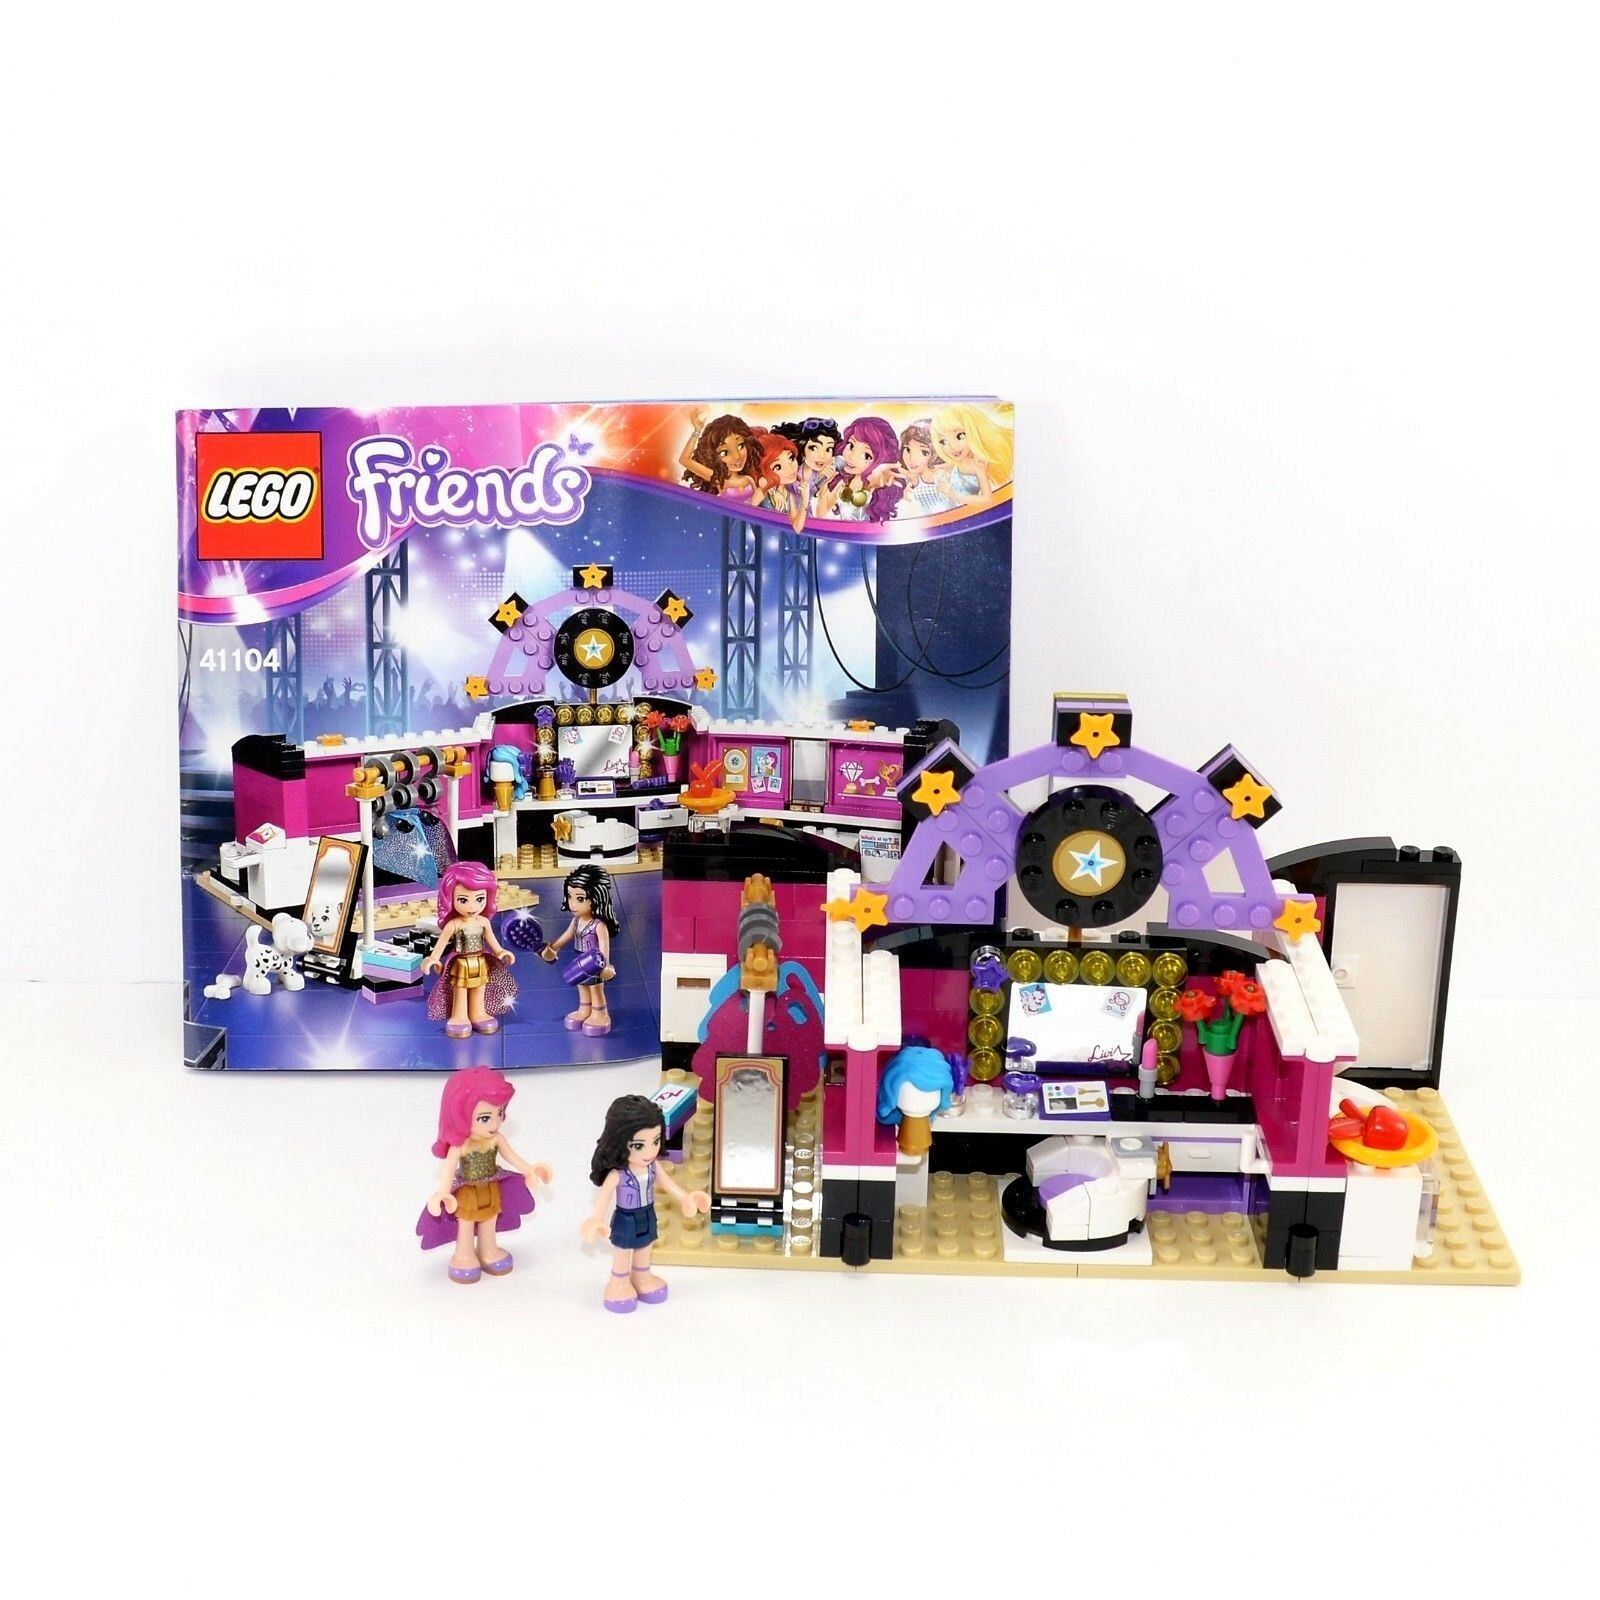 Lego Friends Badezimmer Lego Friends Emma Bedroom Instructions